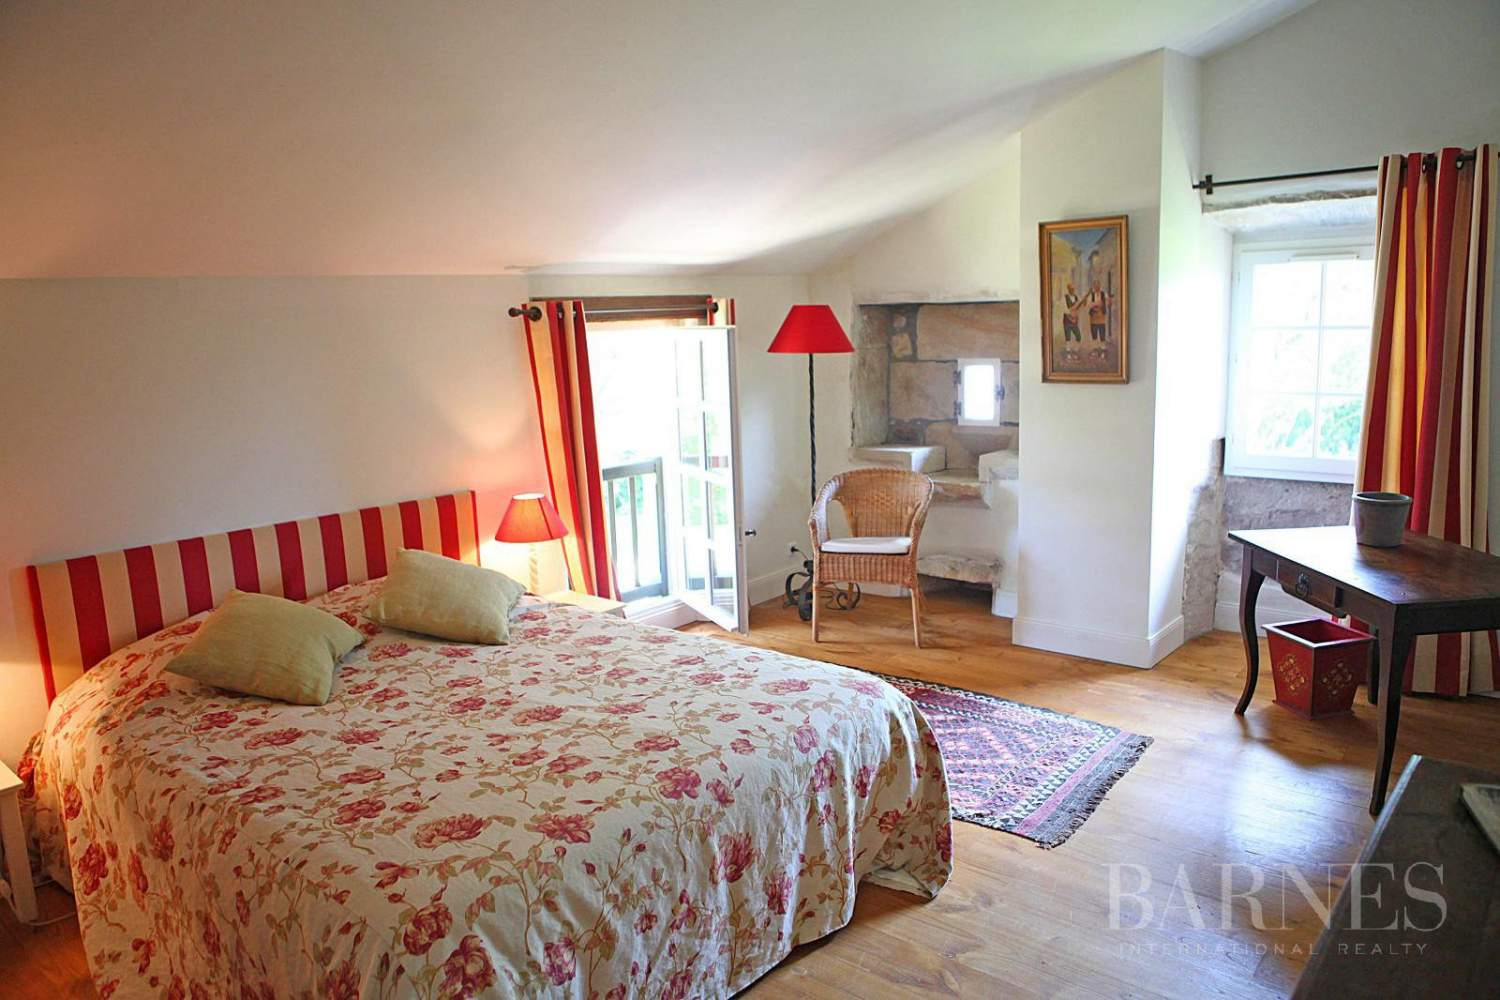 SARE, 20 MINUTES FROM SAINT JEAN DE LUZ, BASQUE STYLE FARMHOUSE WITH HEATED POOL, PANORAMIC MOUNTAIN VIEW picture 14